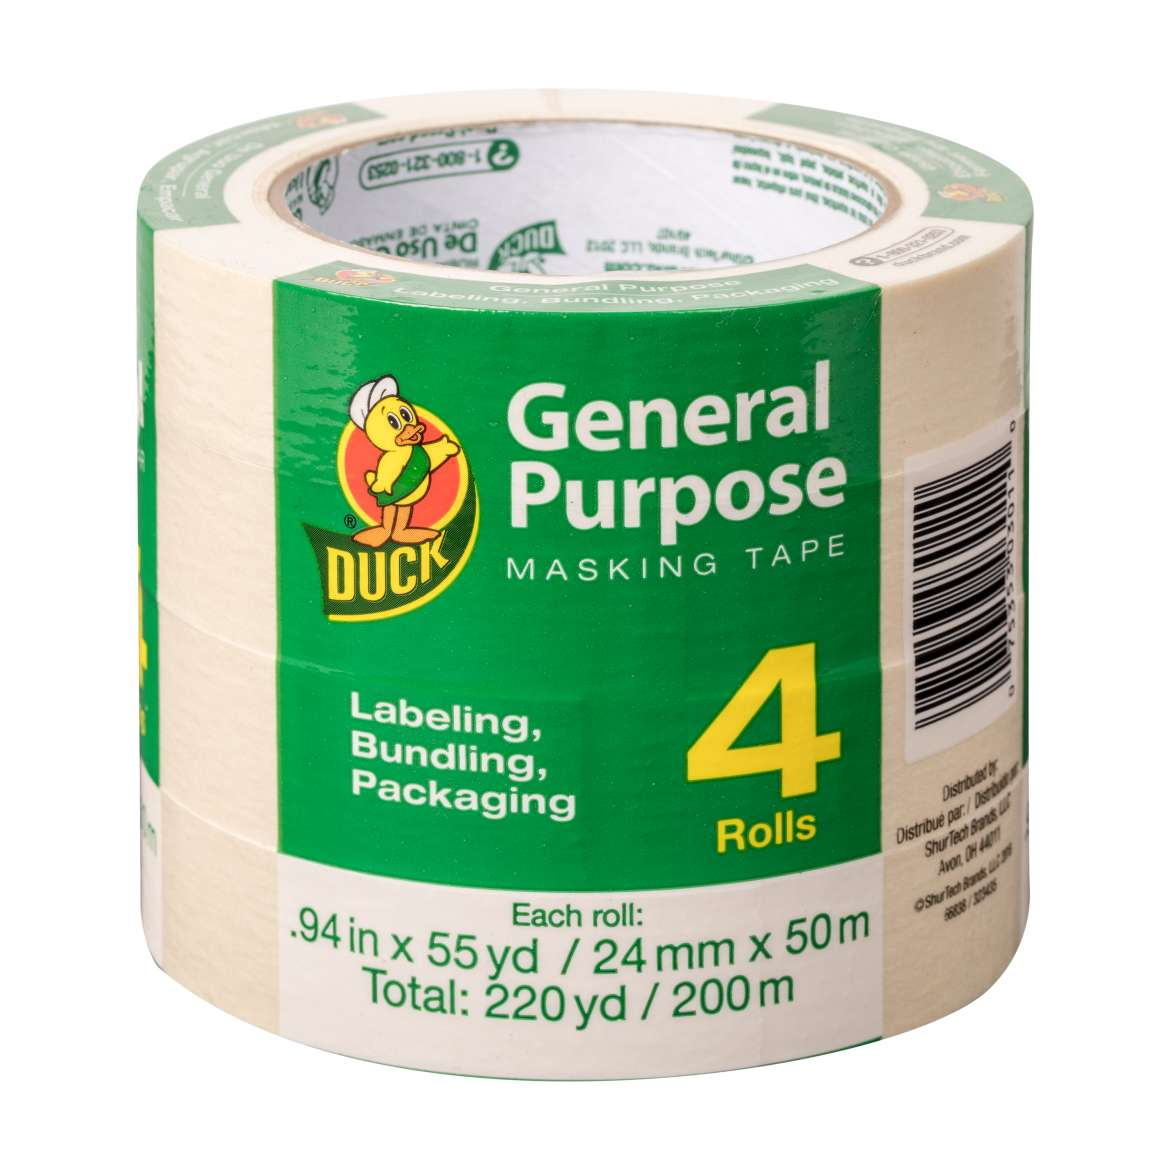 Duck® Brand General Purpose Masking Tape - Beige, 4 pk, .94 in. x 55 yd. Image